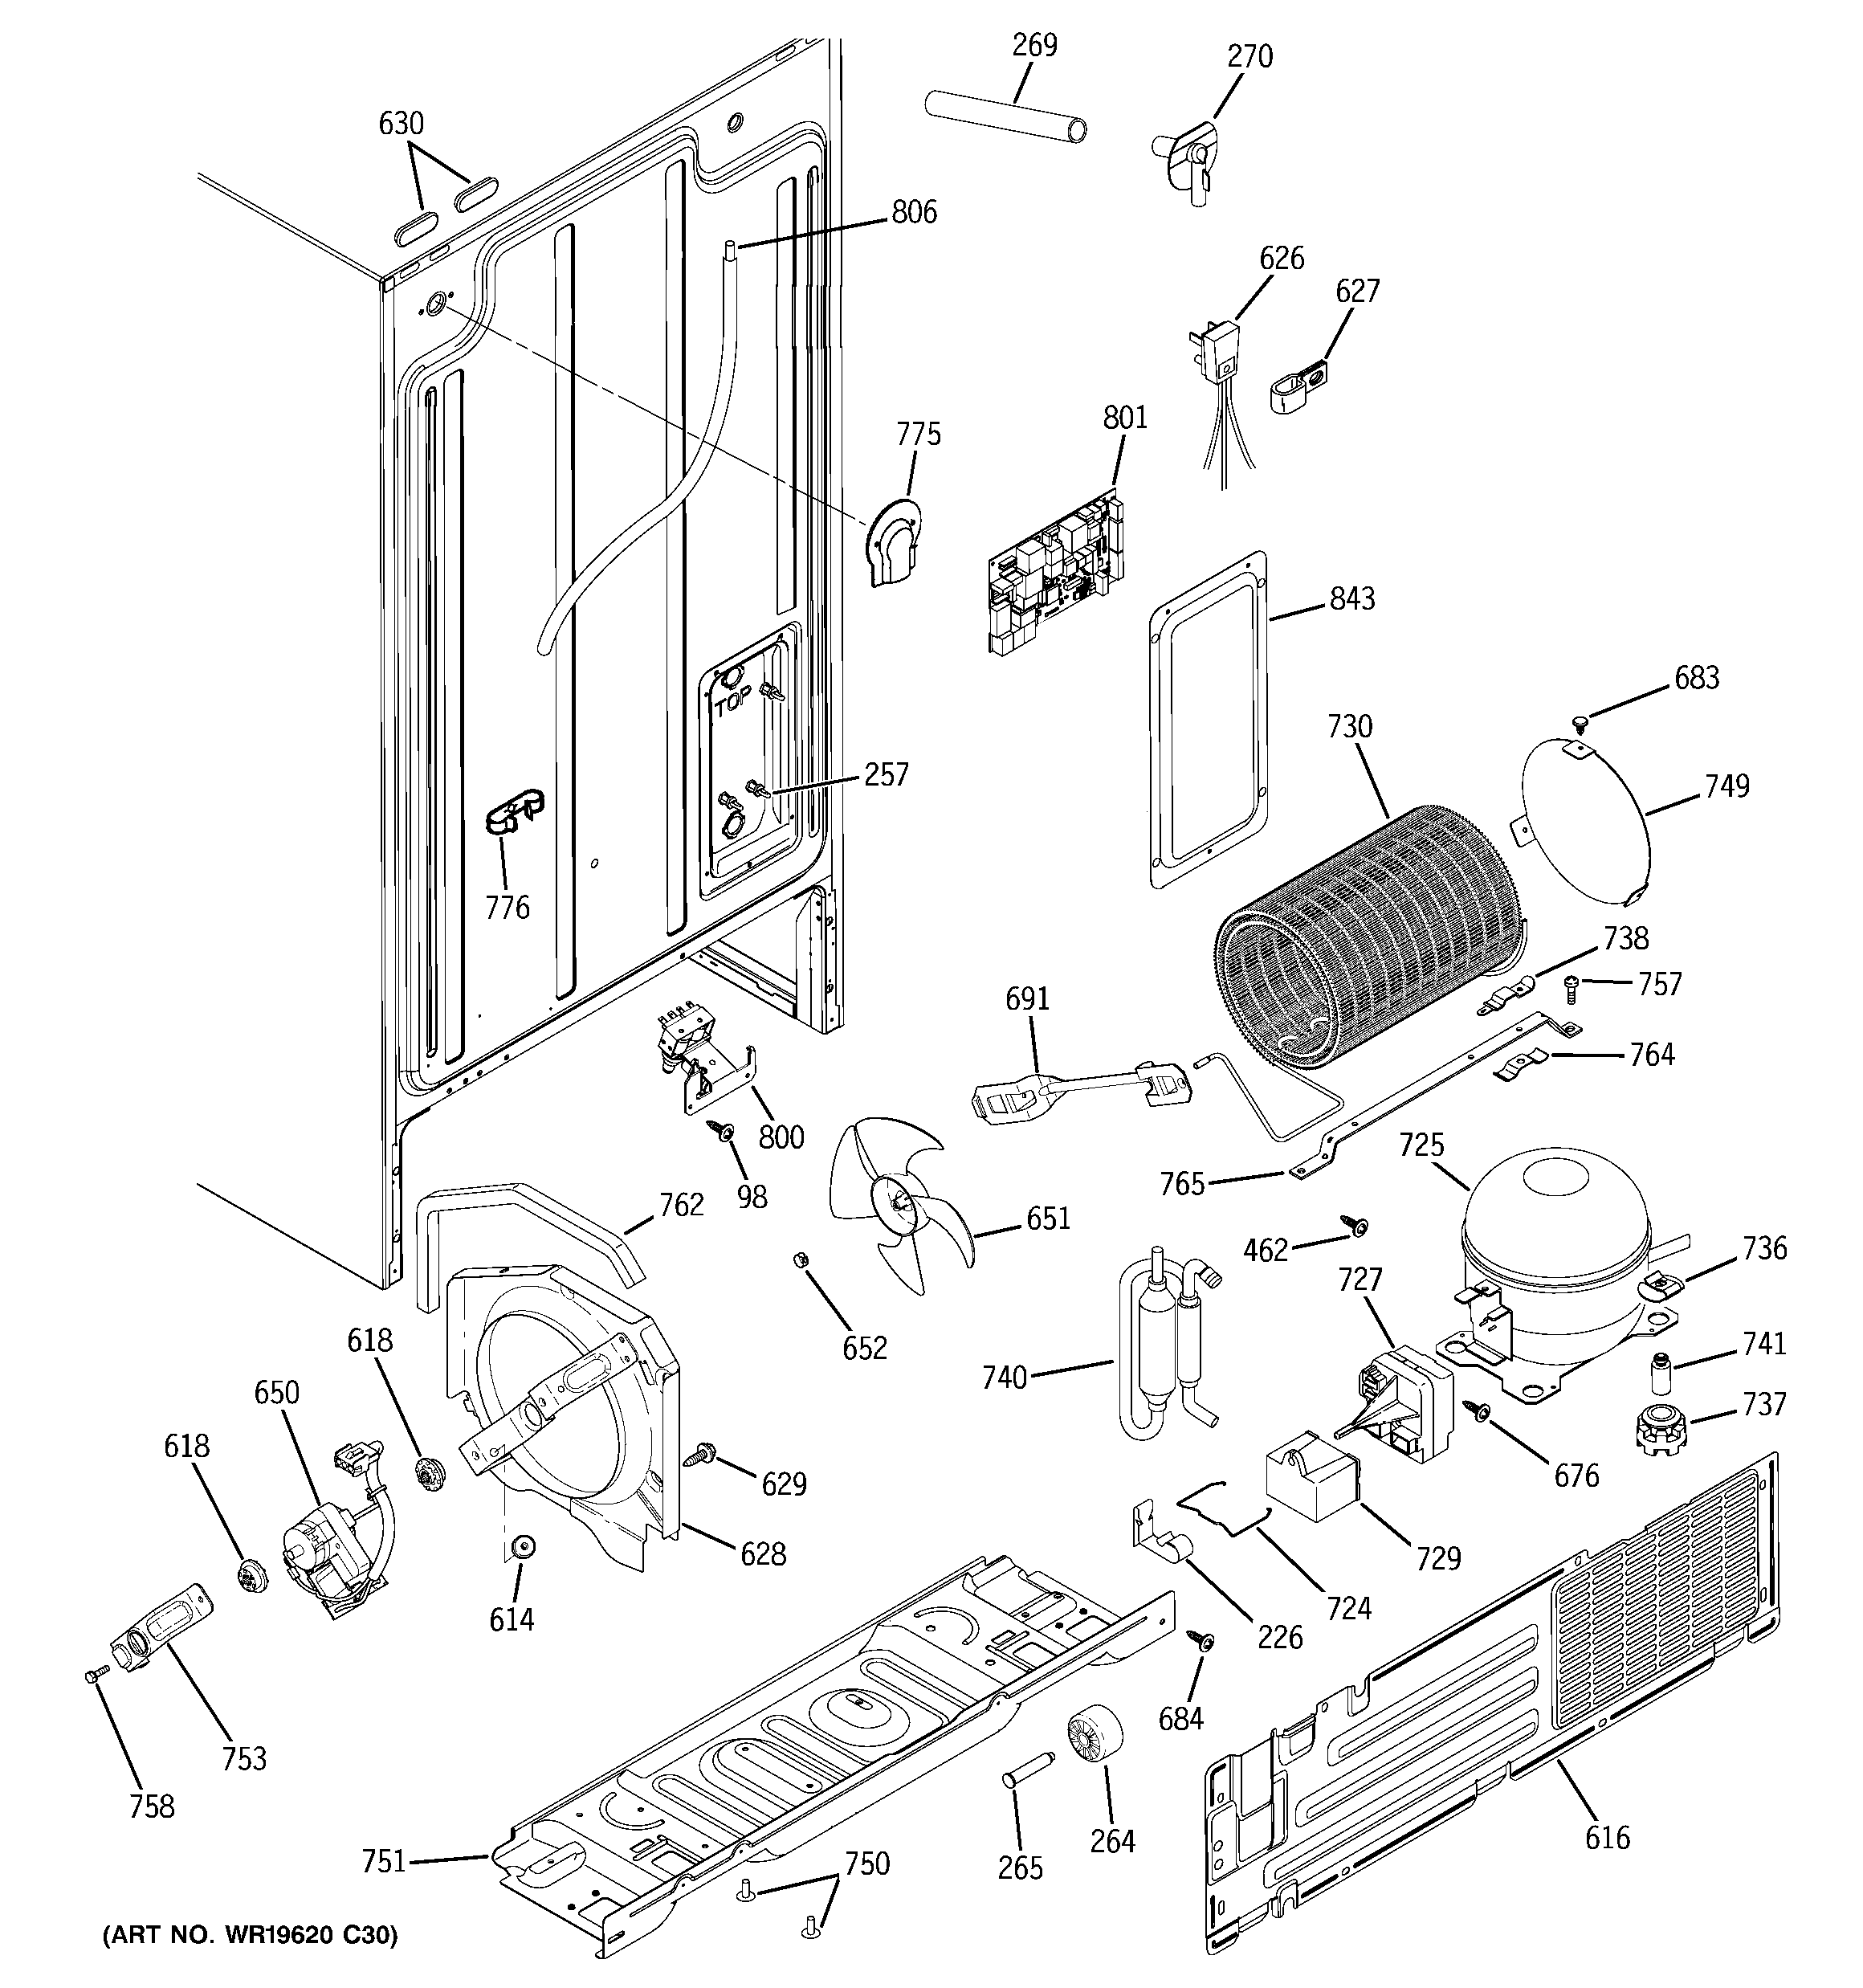 Hotpoint HSS25GFTECC sealed system & mother board diagram